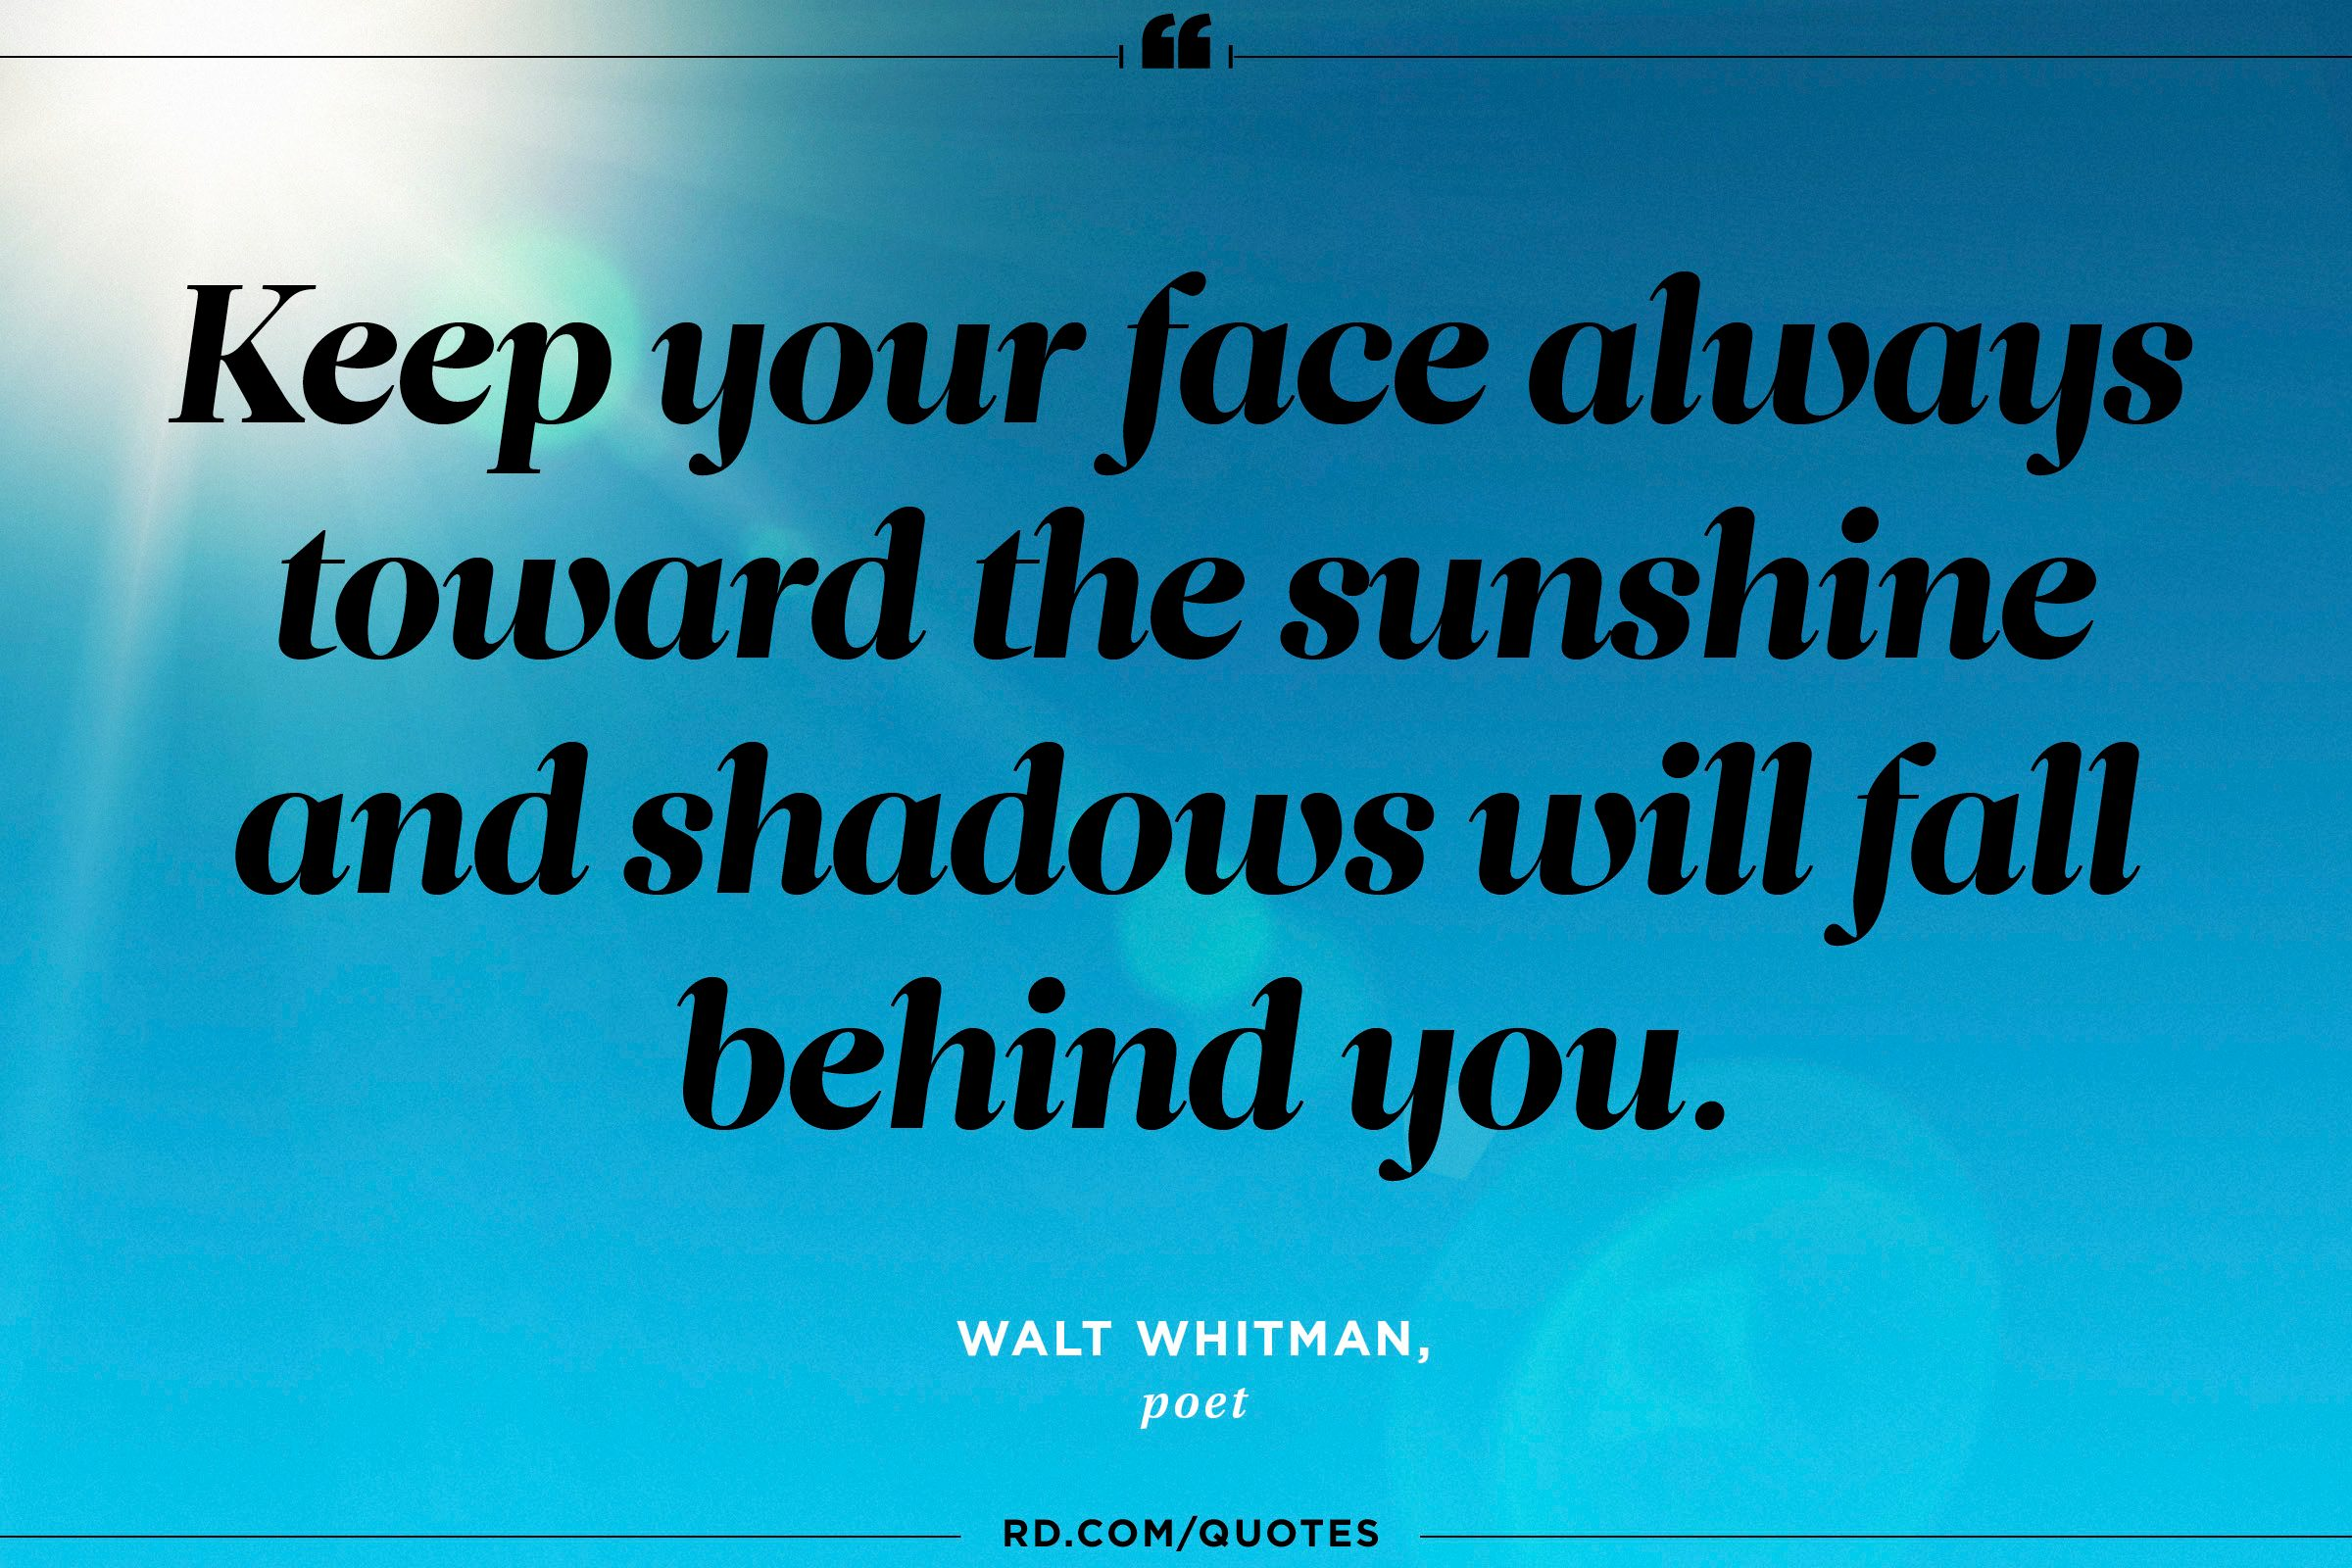 Quotes About Optimism 12 Sunshine Quotes To Cheer You Up  Reader's Digest